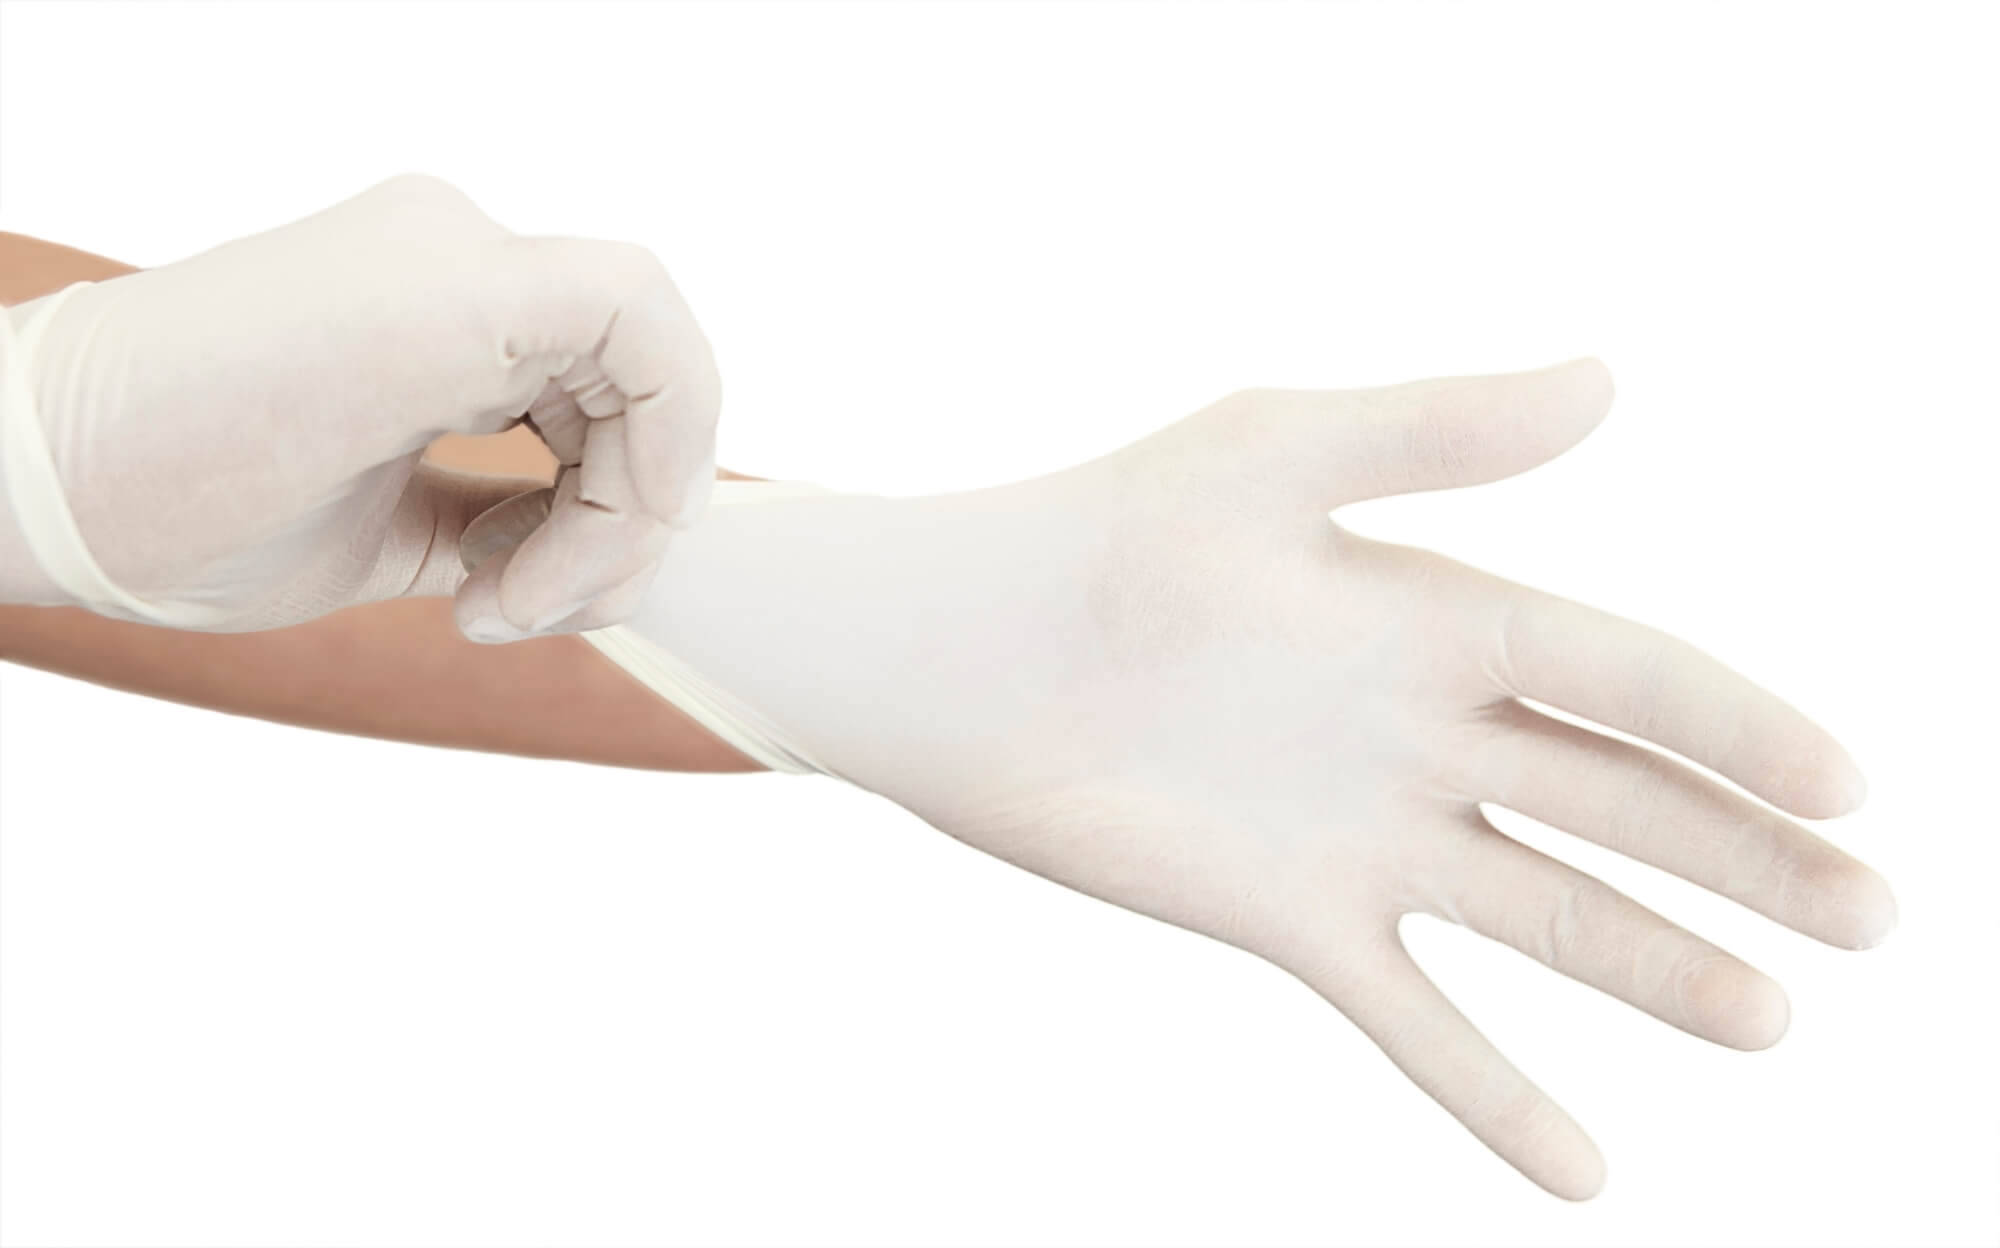 Do Medical Exam Gloves Expire?